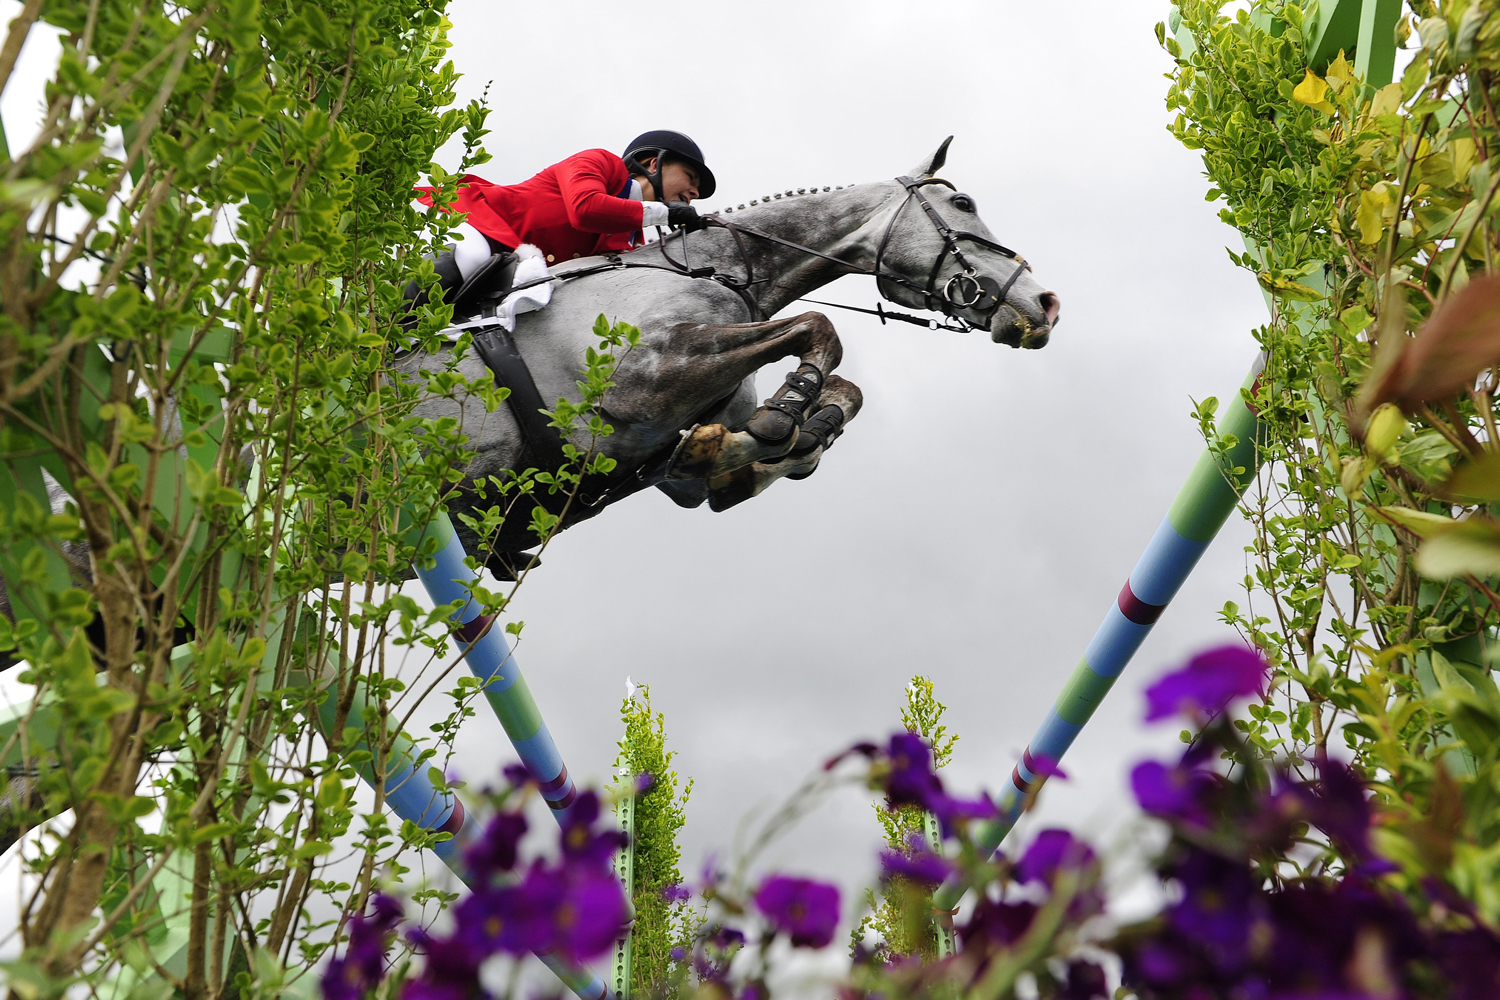 May 11, 2014.  Tiana Coudray of The USA riding Ringwood Magister during the Show Jumping on day five of the Badminton Horse Trials in Badminton, England.